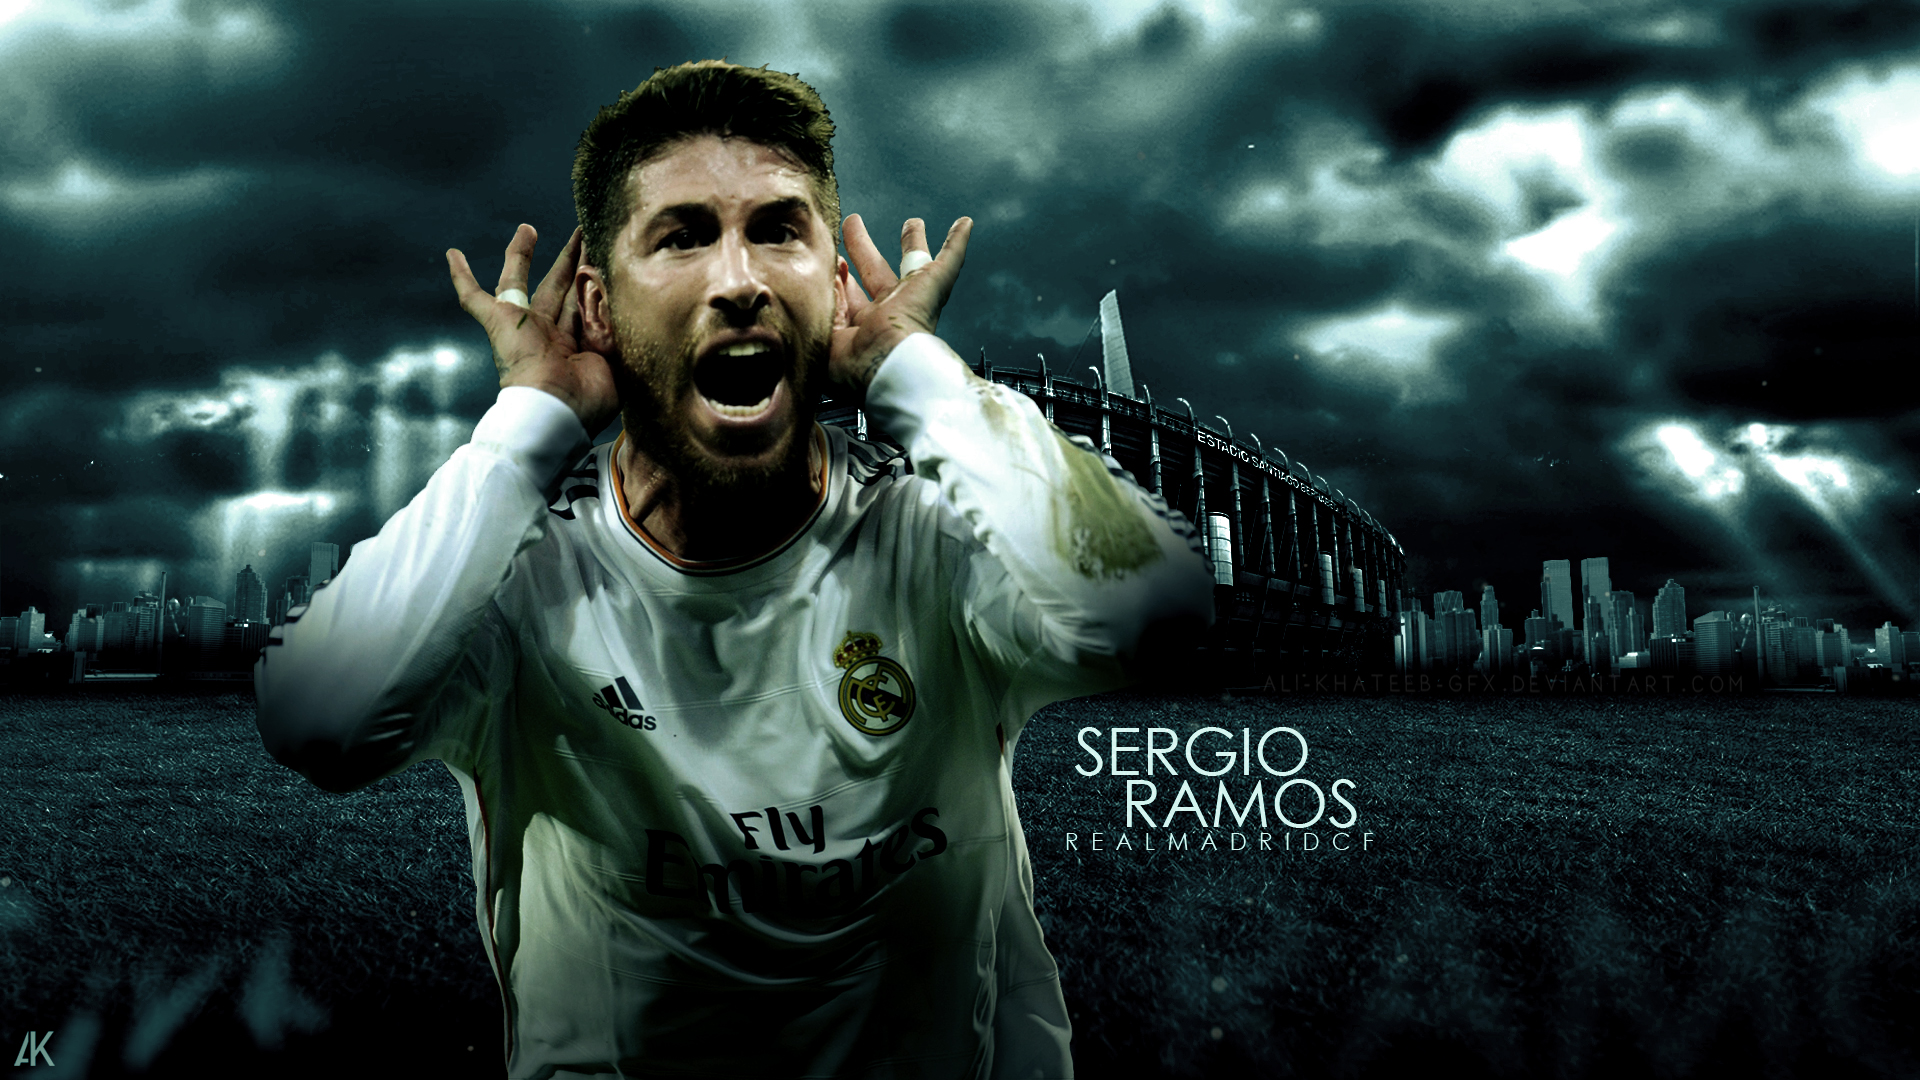 sergio ramos hd images - photo #37